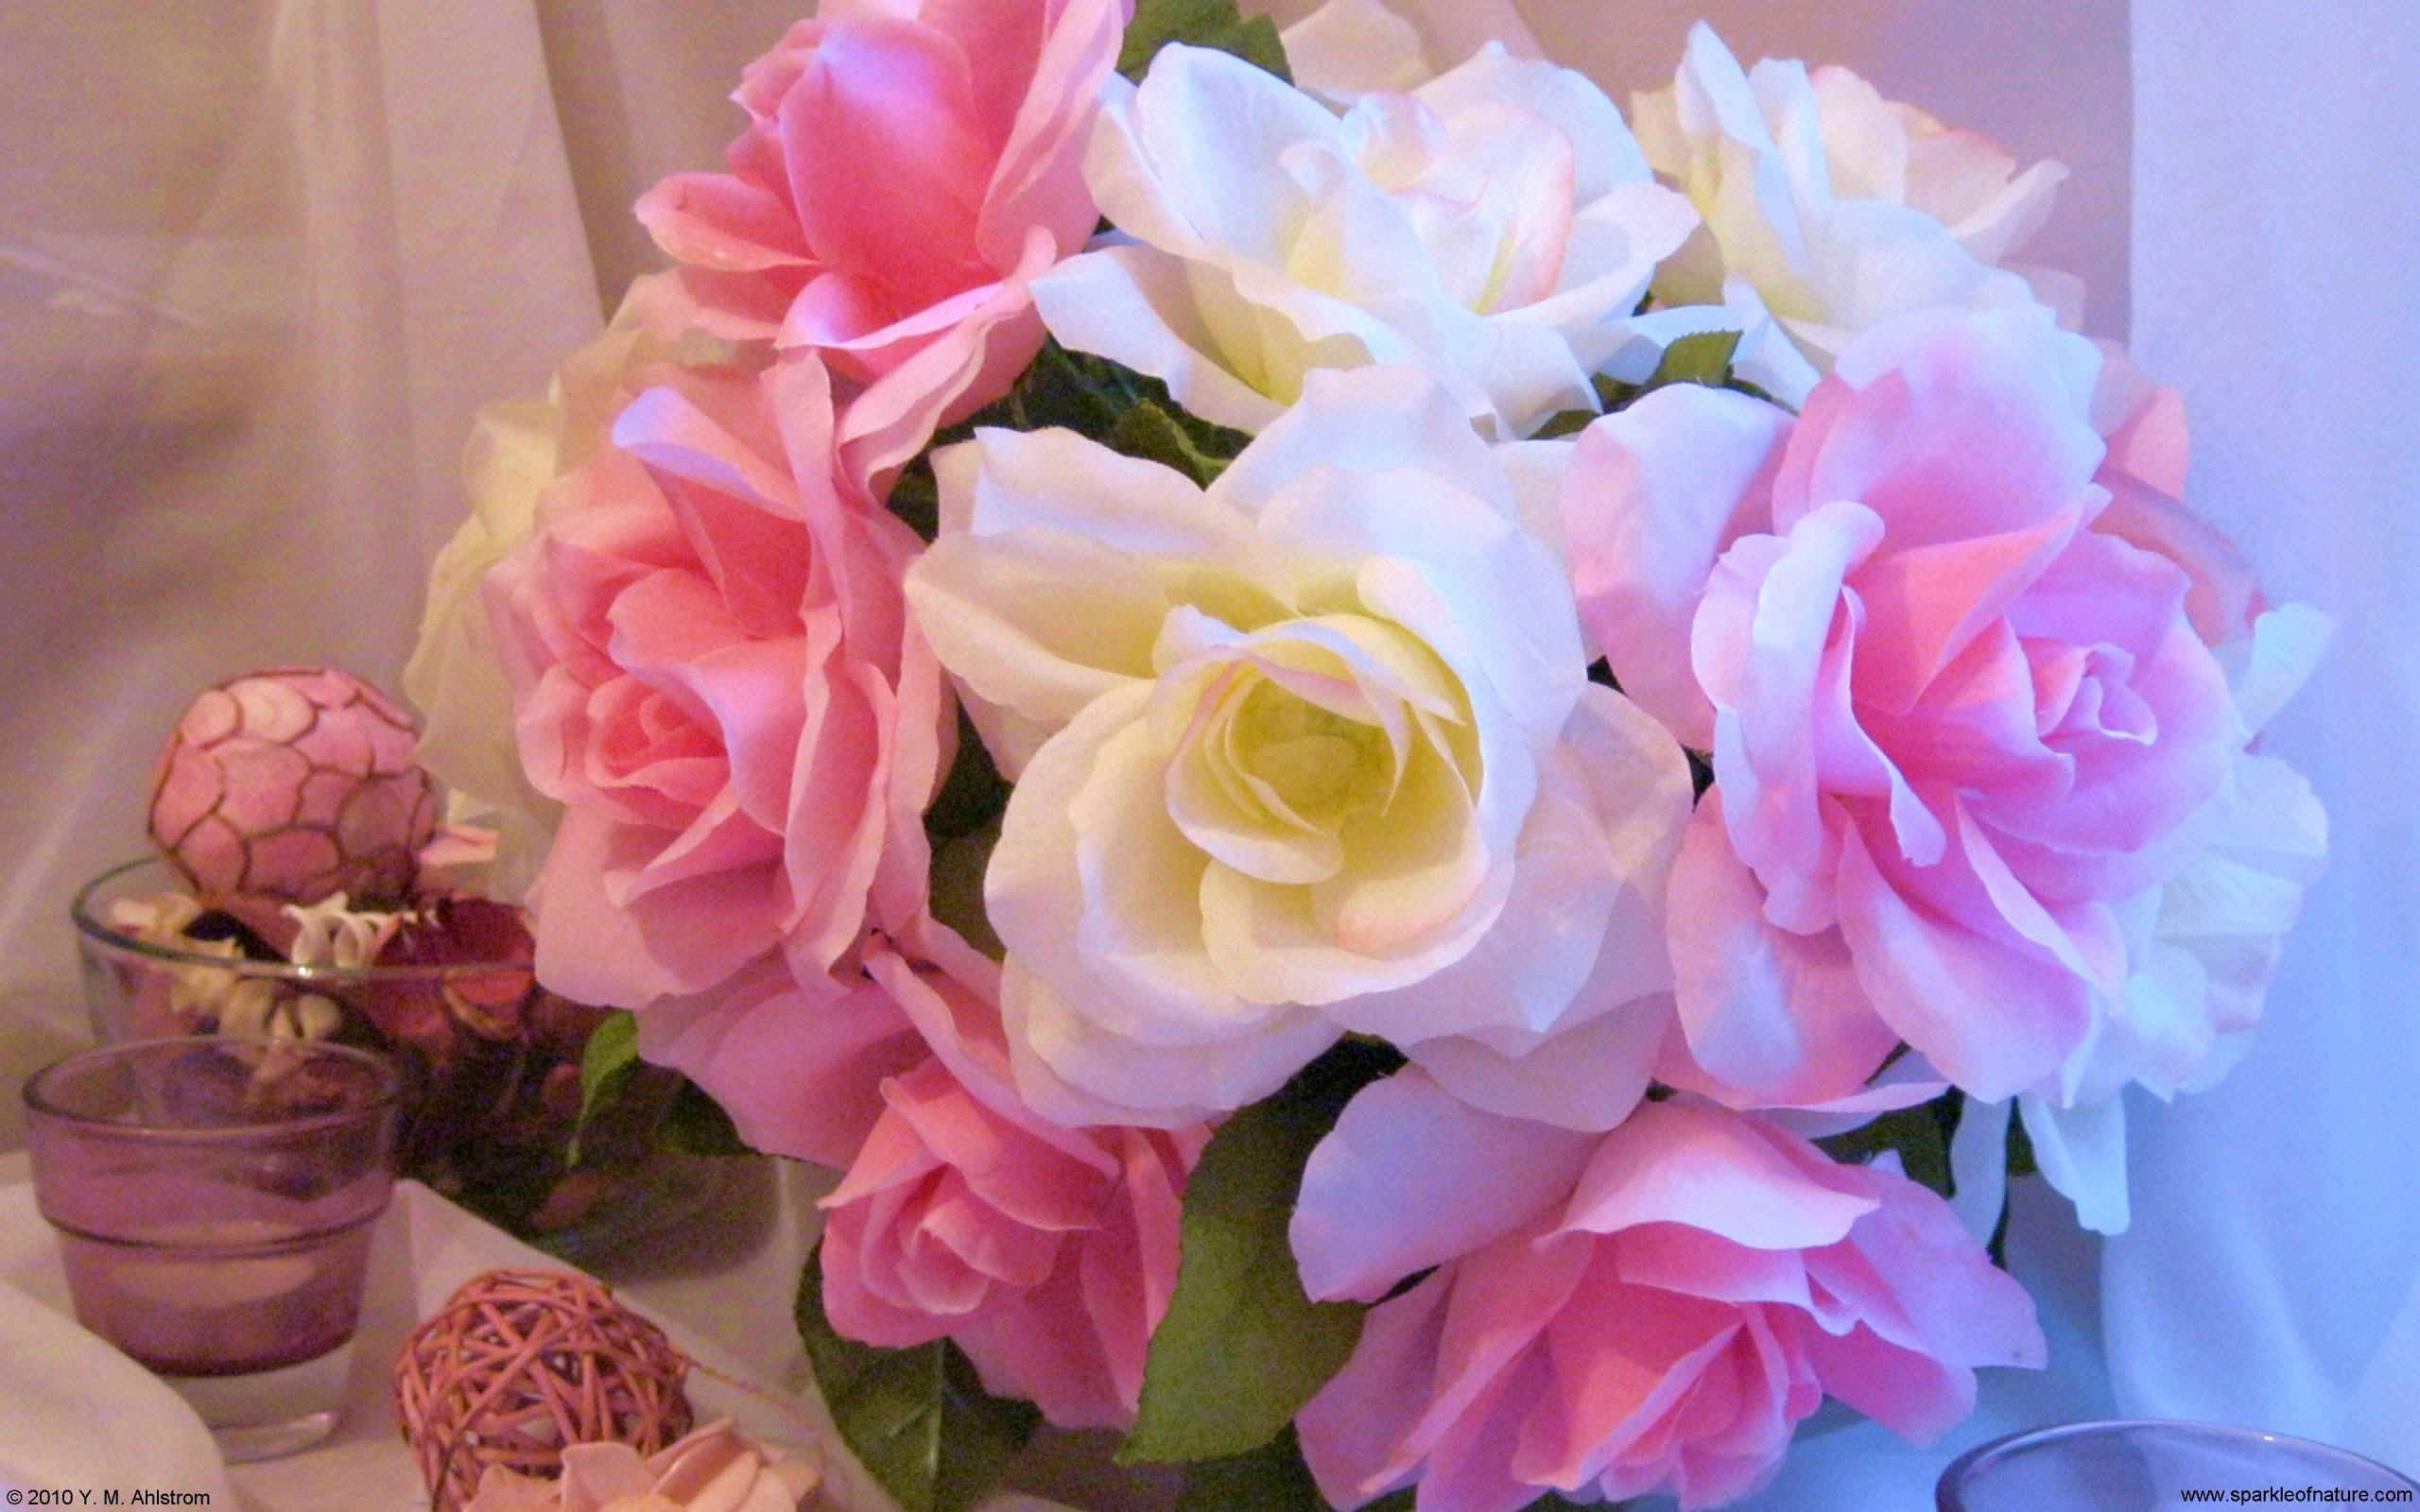 0357 pink and white roses W 2560x1600jpg 411499 bytes 2560x1600